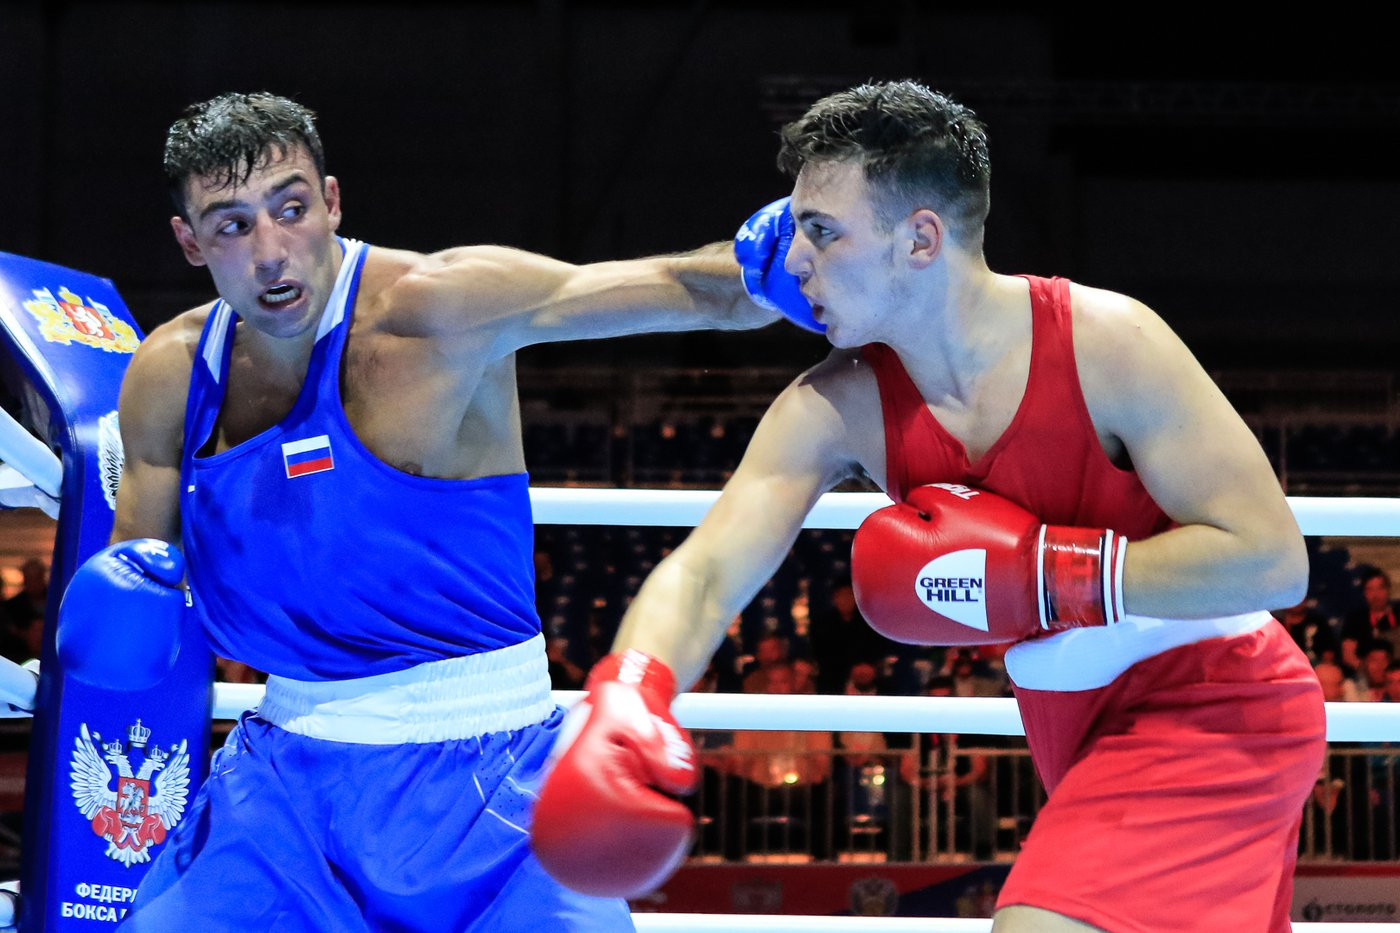 Russia's Georgii Kushitashvili defeated Sammy Lee of Wales ©Yekaterinburg 2019